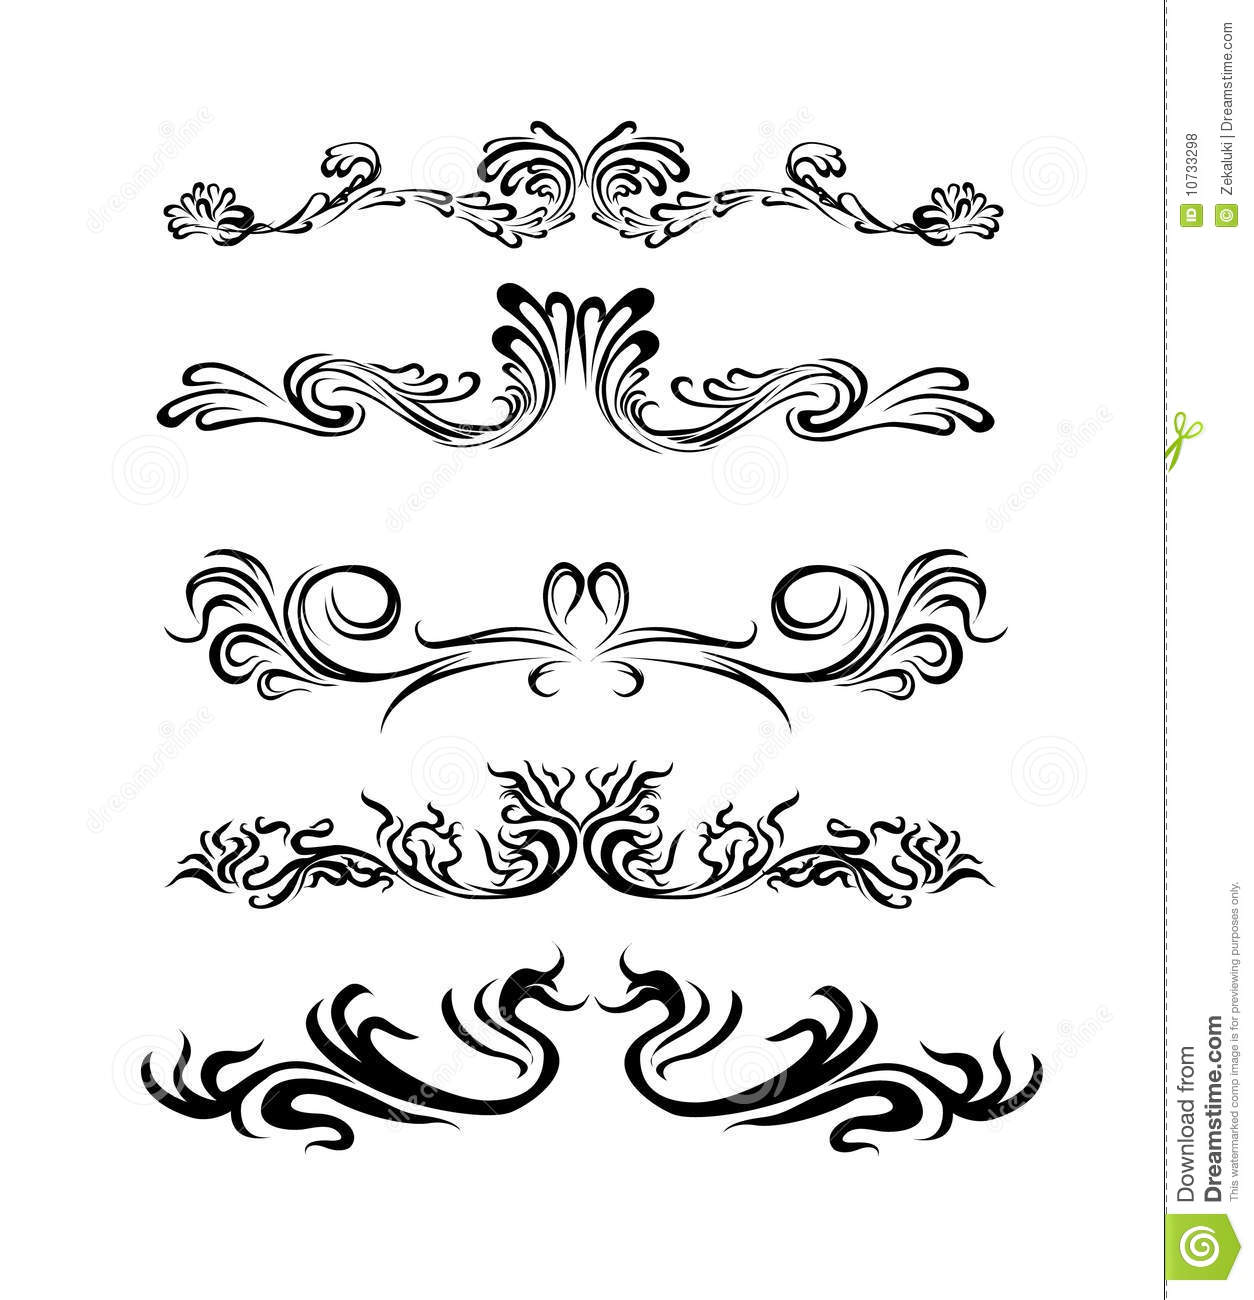 Lines Design Elements Of Different Styles Royalty Free